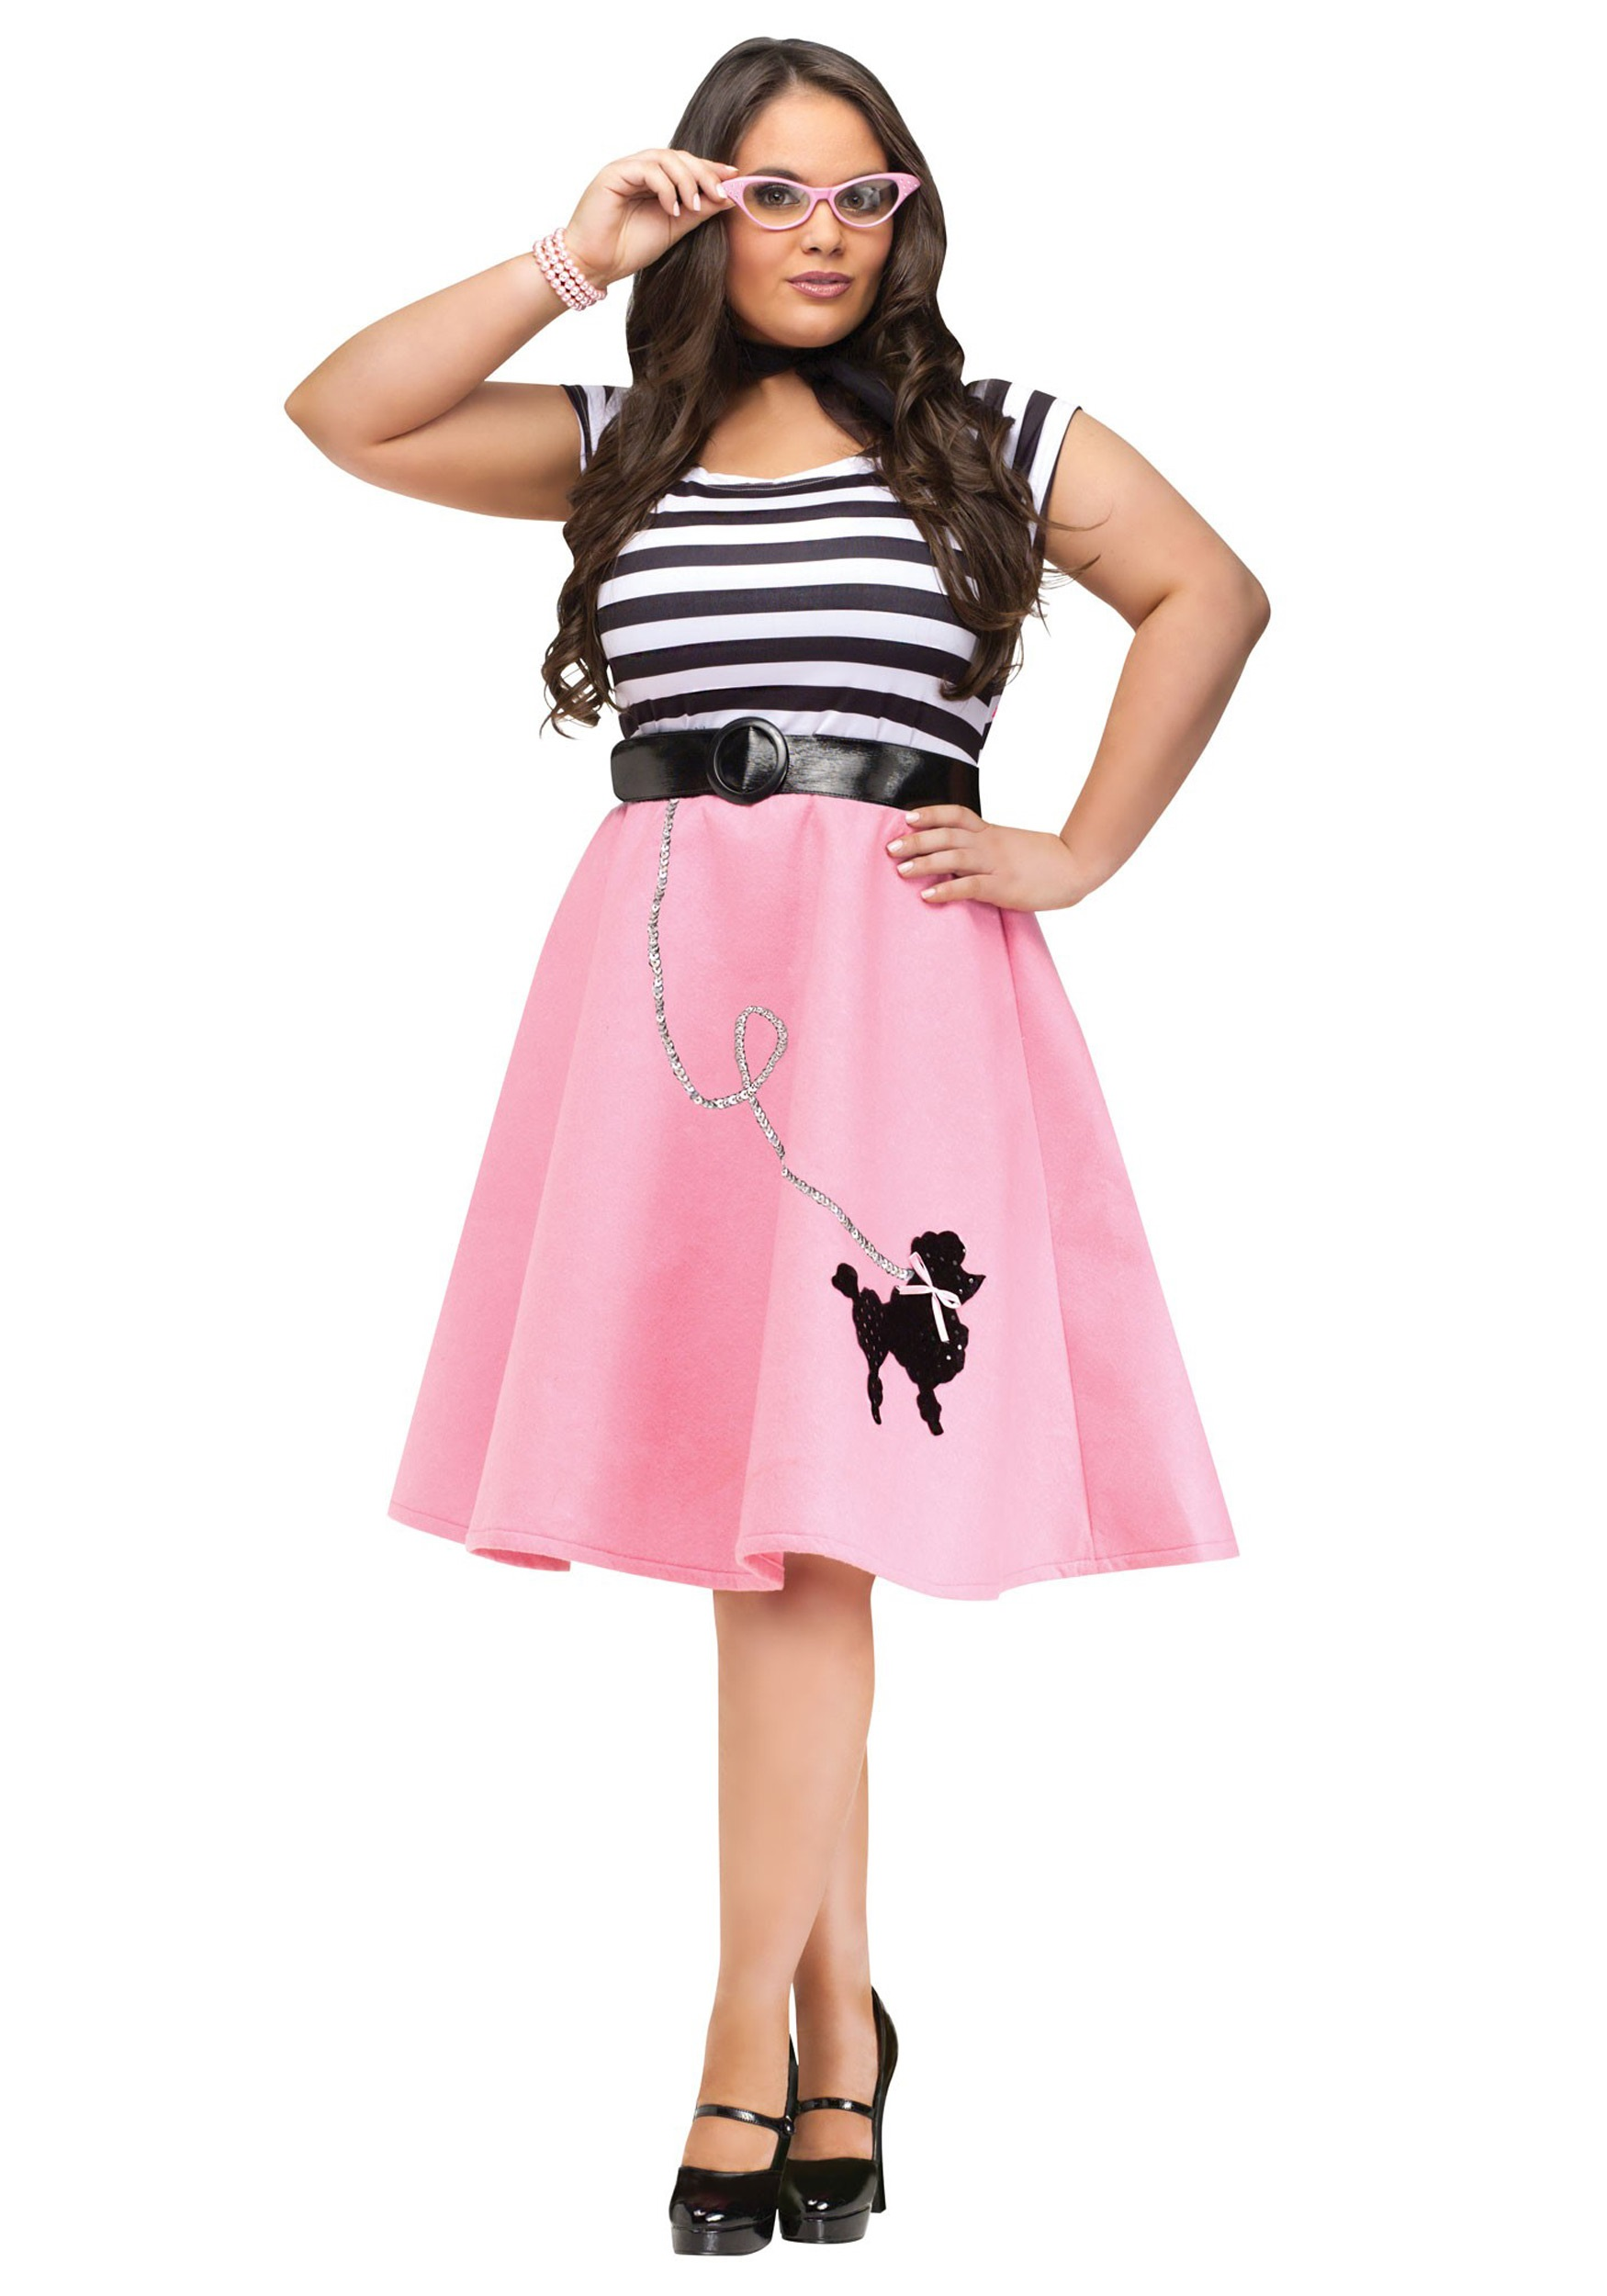 Poodle Skirt Dress Costume- Plus Size | Womens 50s Costume